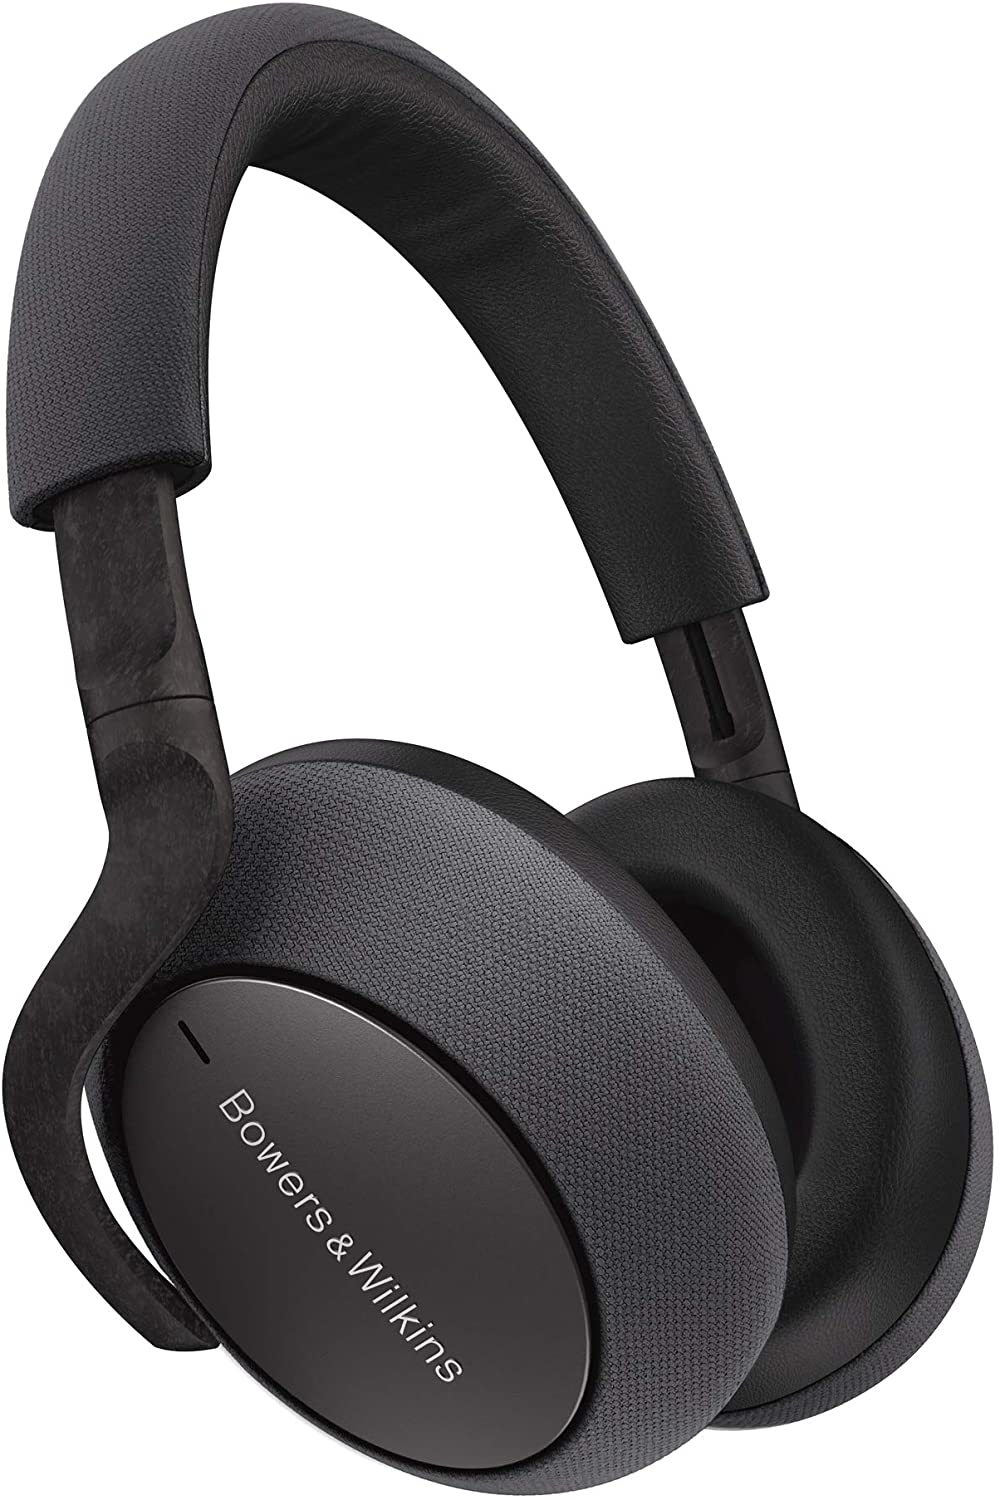 Bowers & Wilkins Wireless PX7